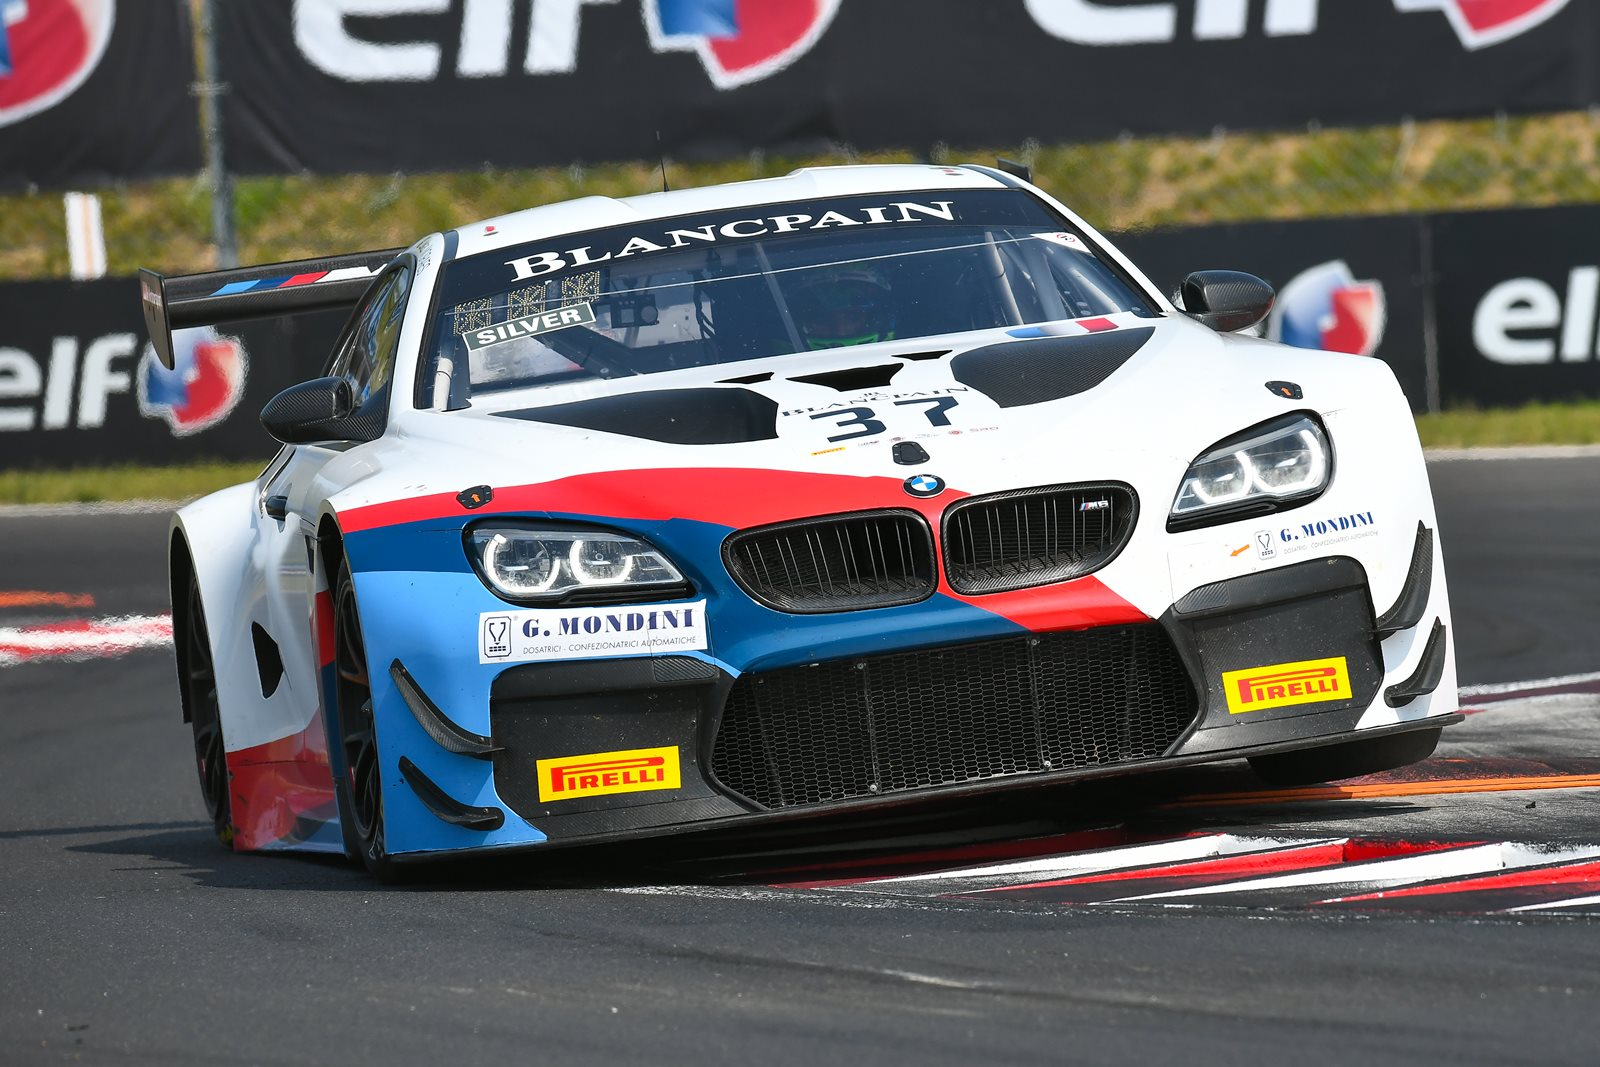 Photo of Blancpain – Em Nürburgring, Lukas Moraes disputa última etapa da temporada do Blancpain GT Series